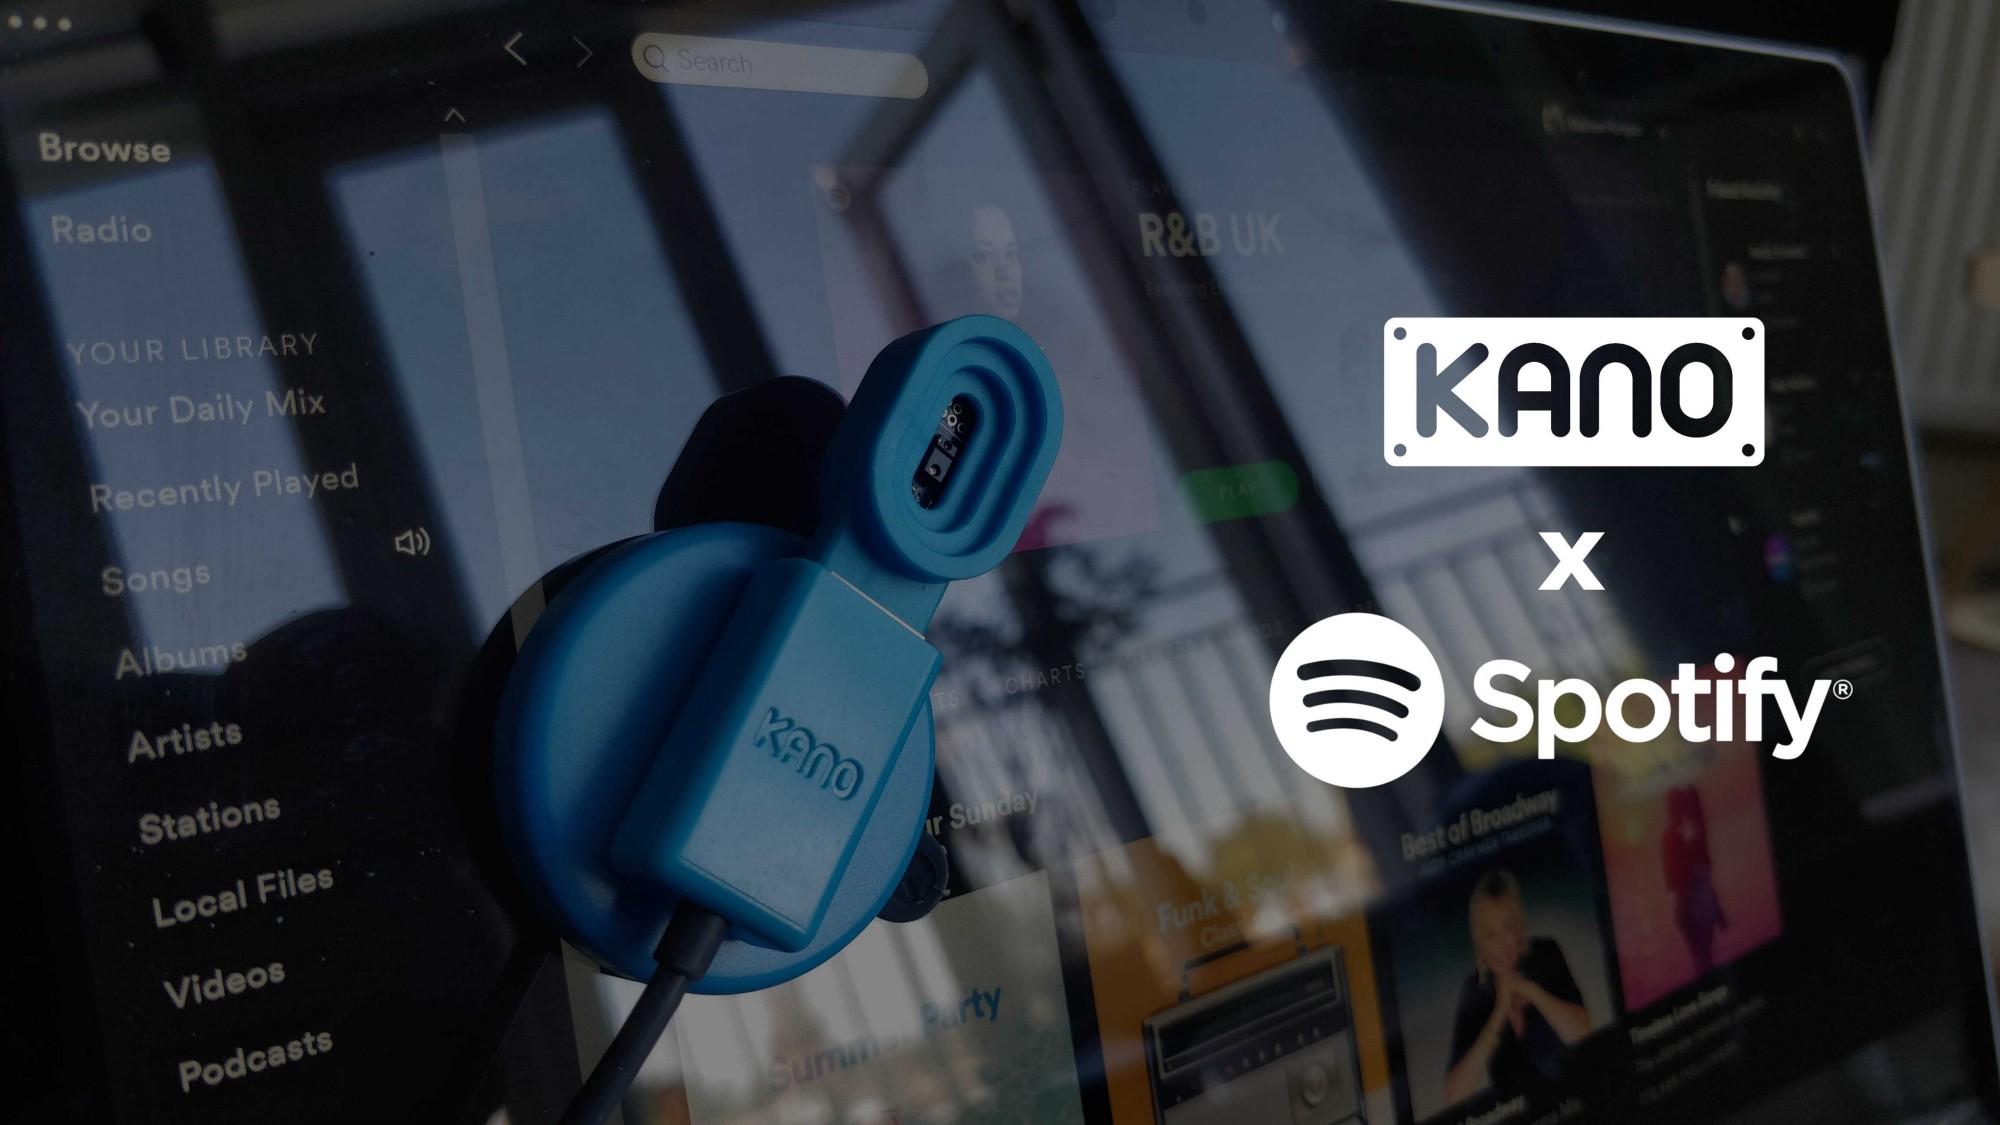 Hacking your kit: Kano x Spotify - Motion Controlled Music